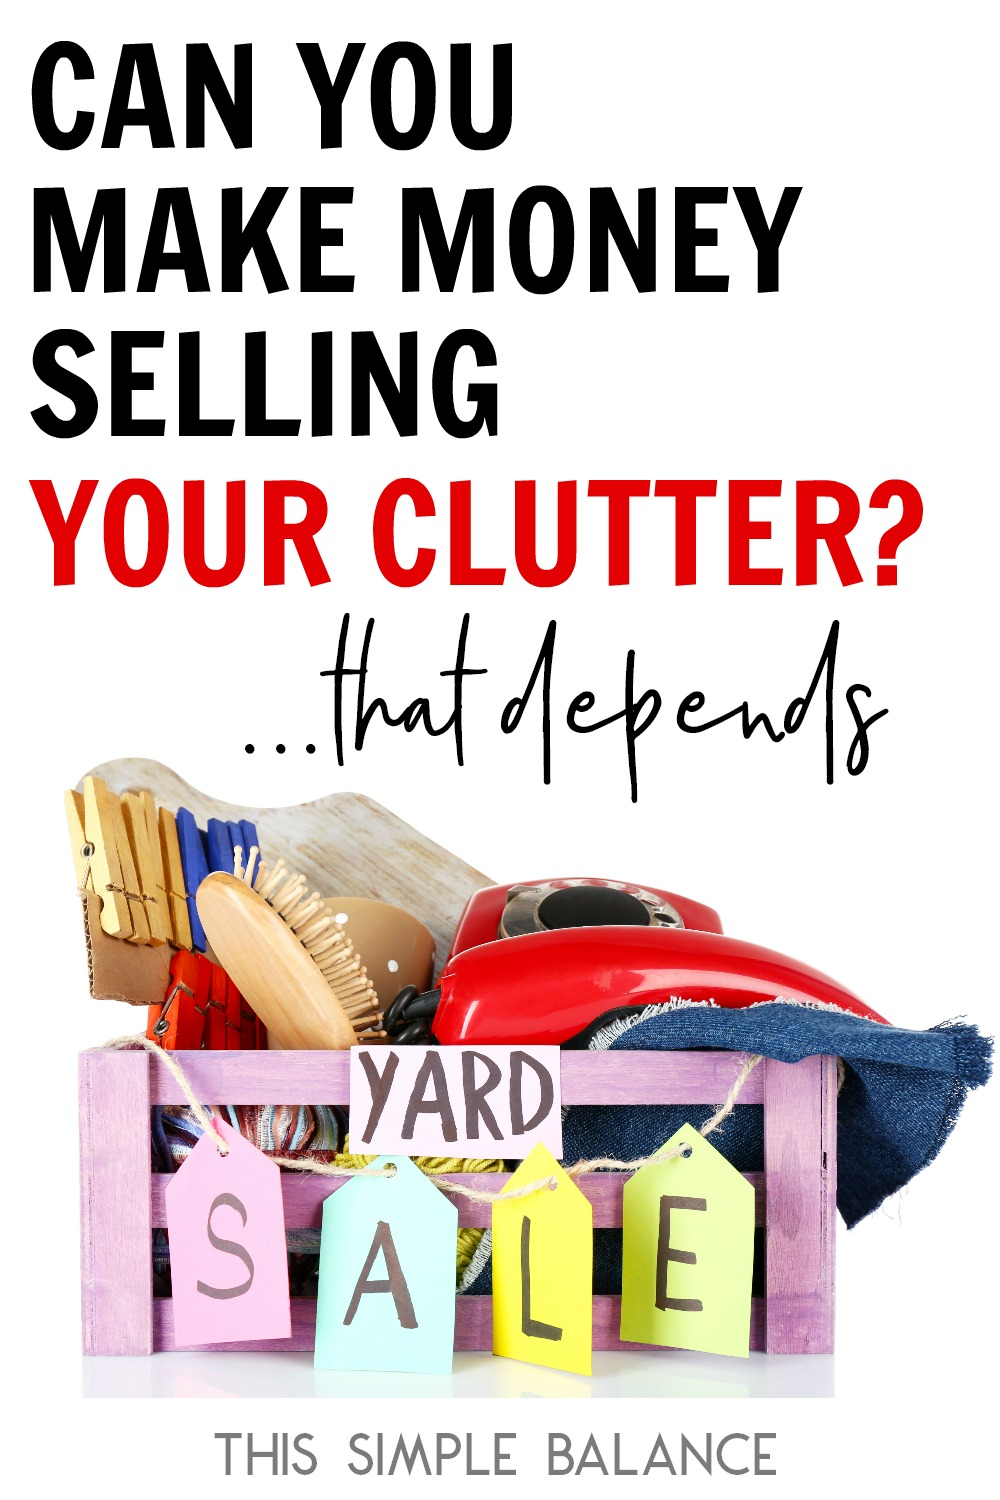 Countless blog posts claim you can make money selling your clutter. But can you really? And if you try, is it even worth it?